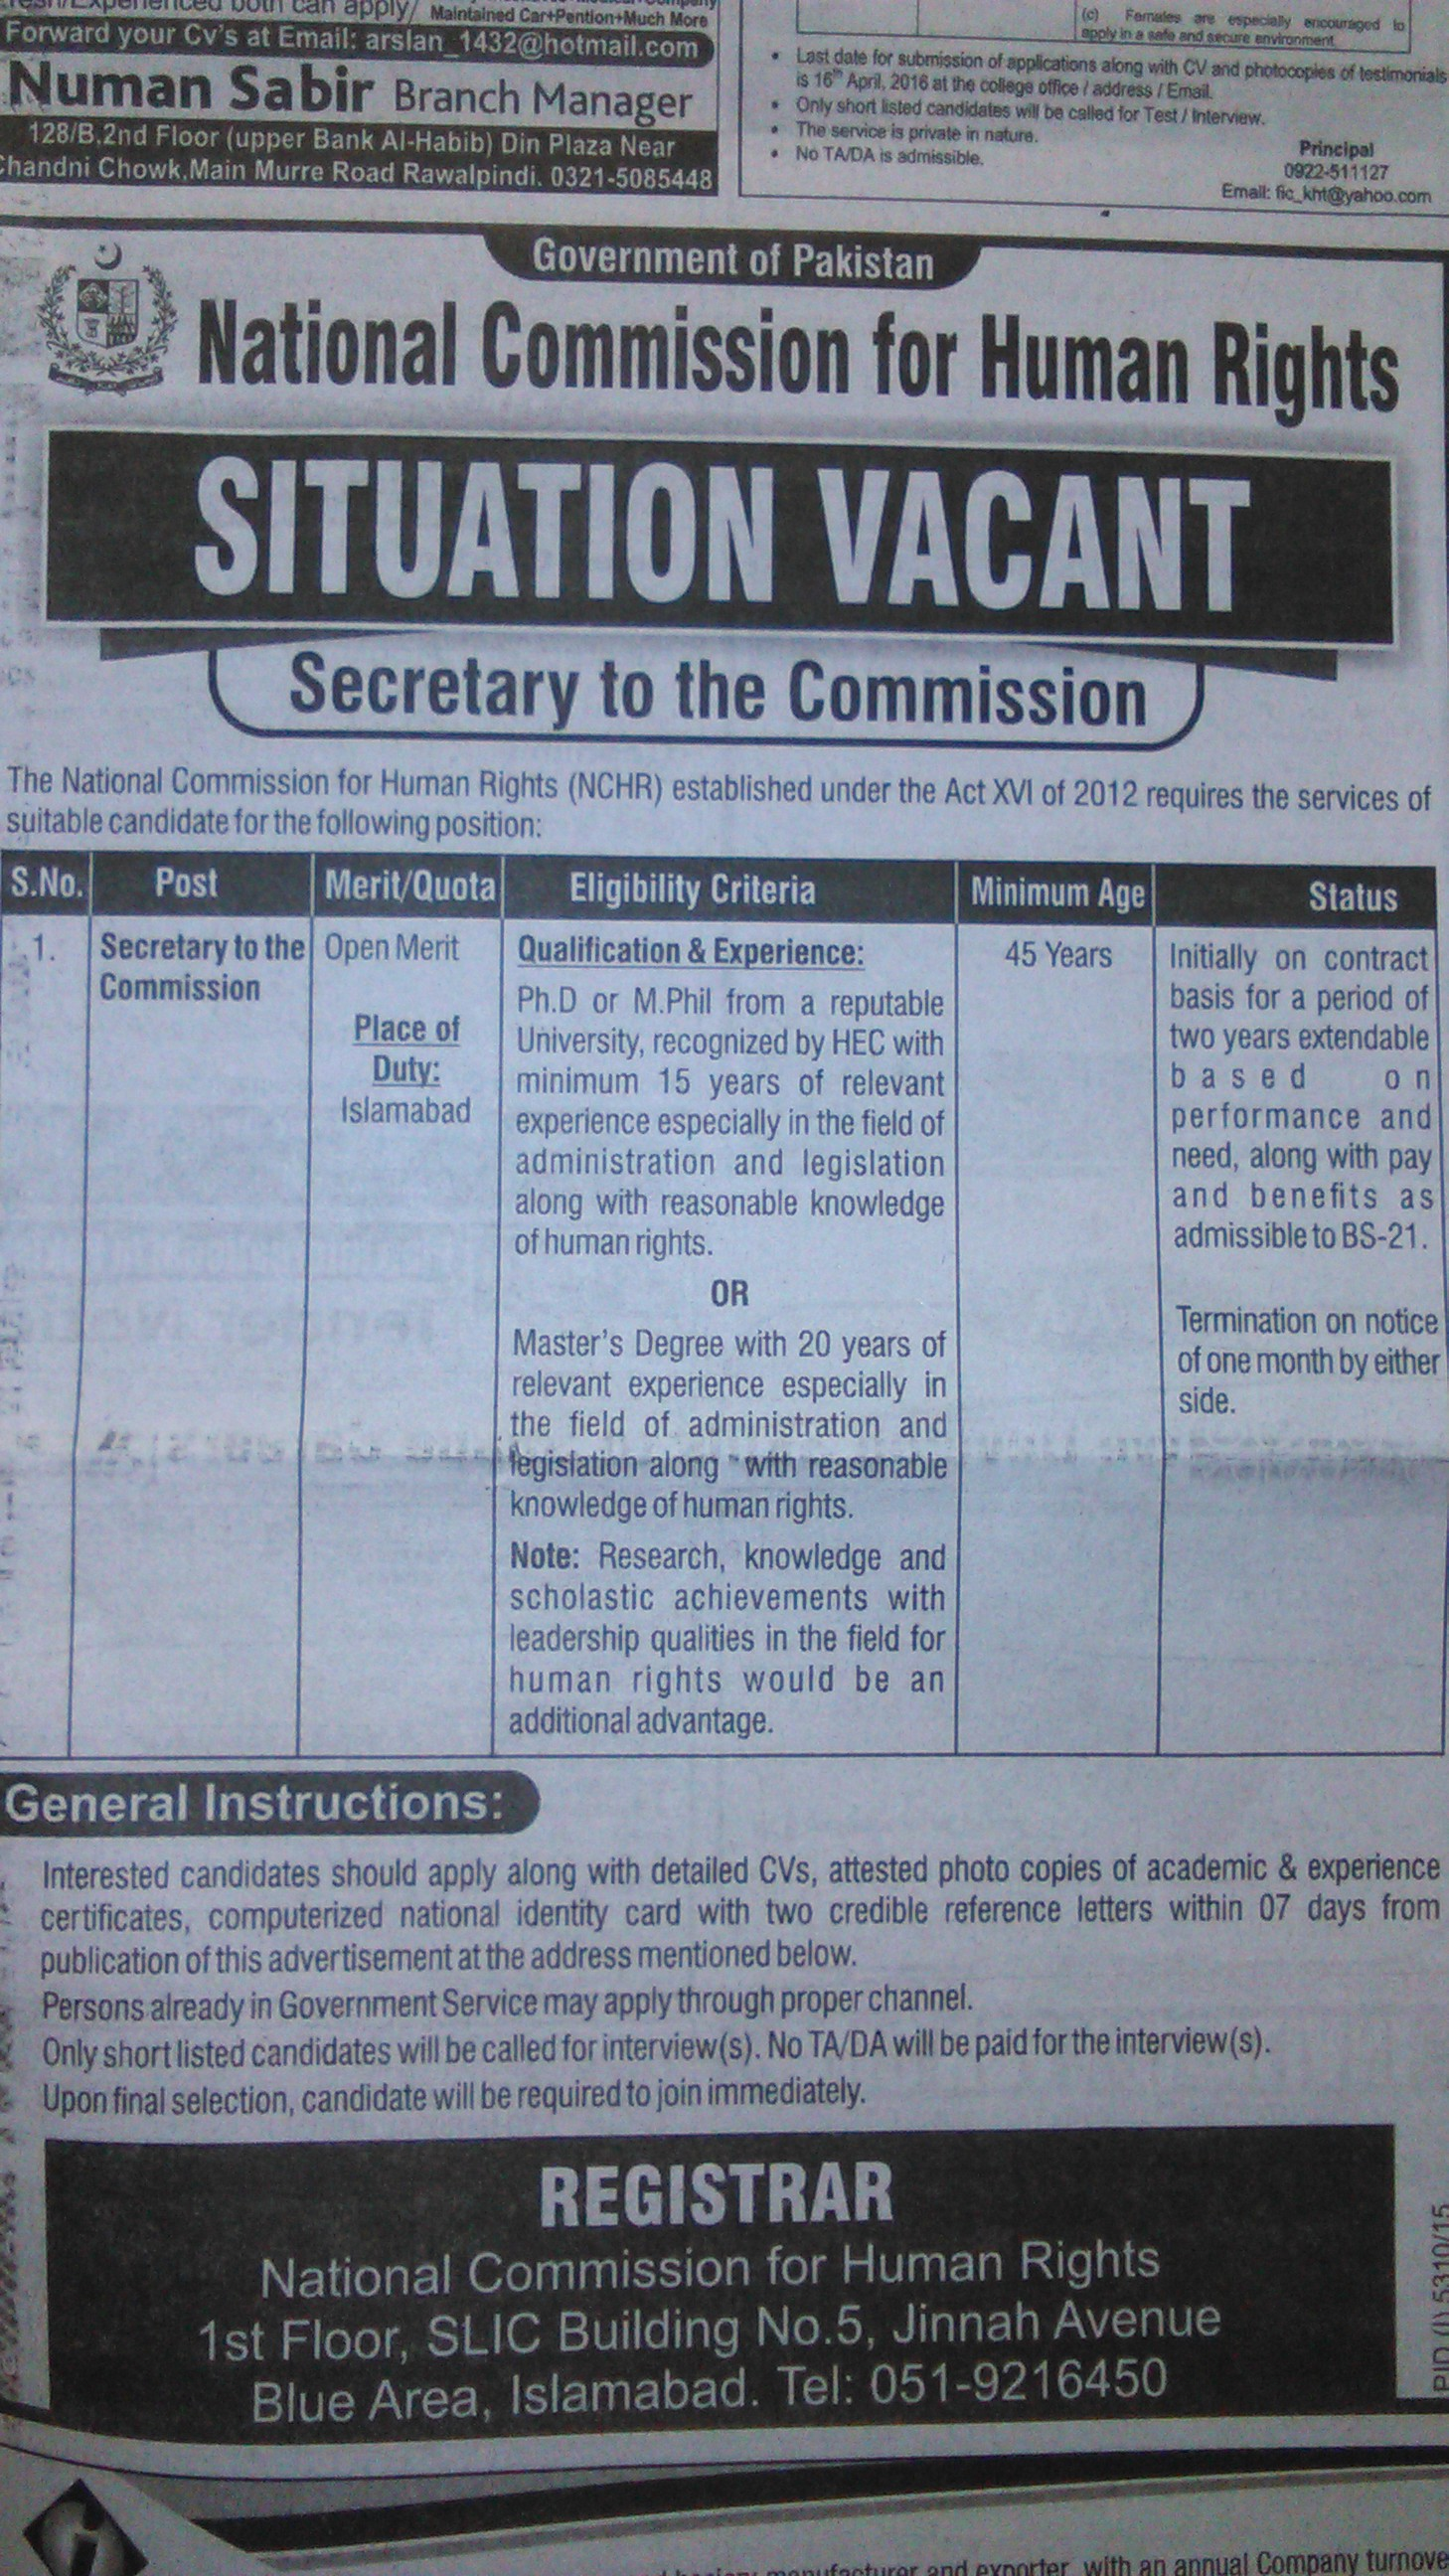 National Commission for Human Rights Secretary Required